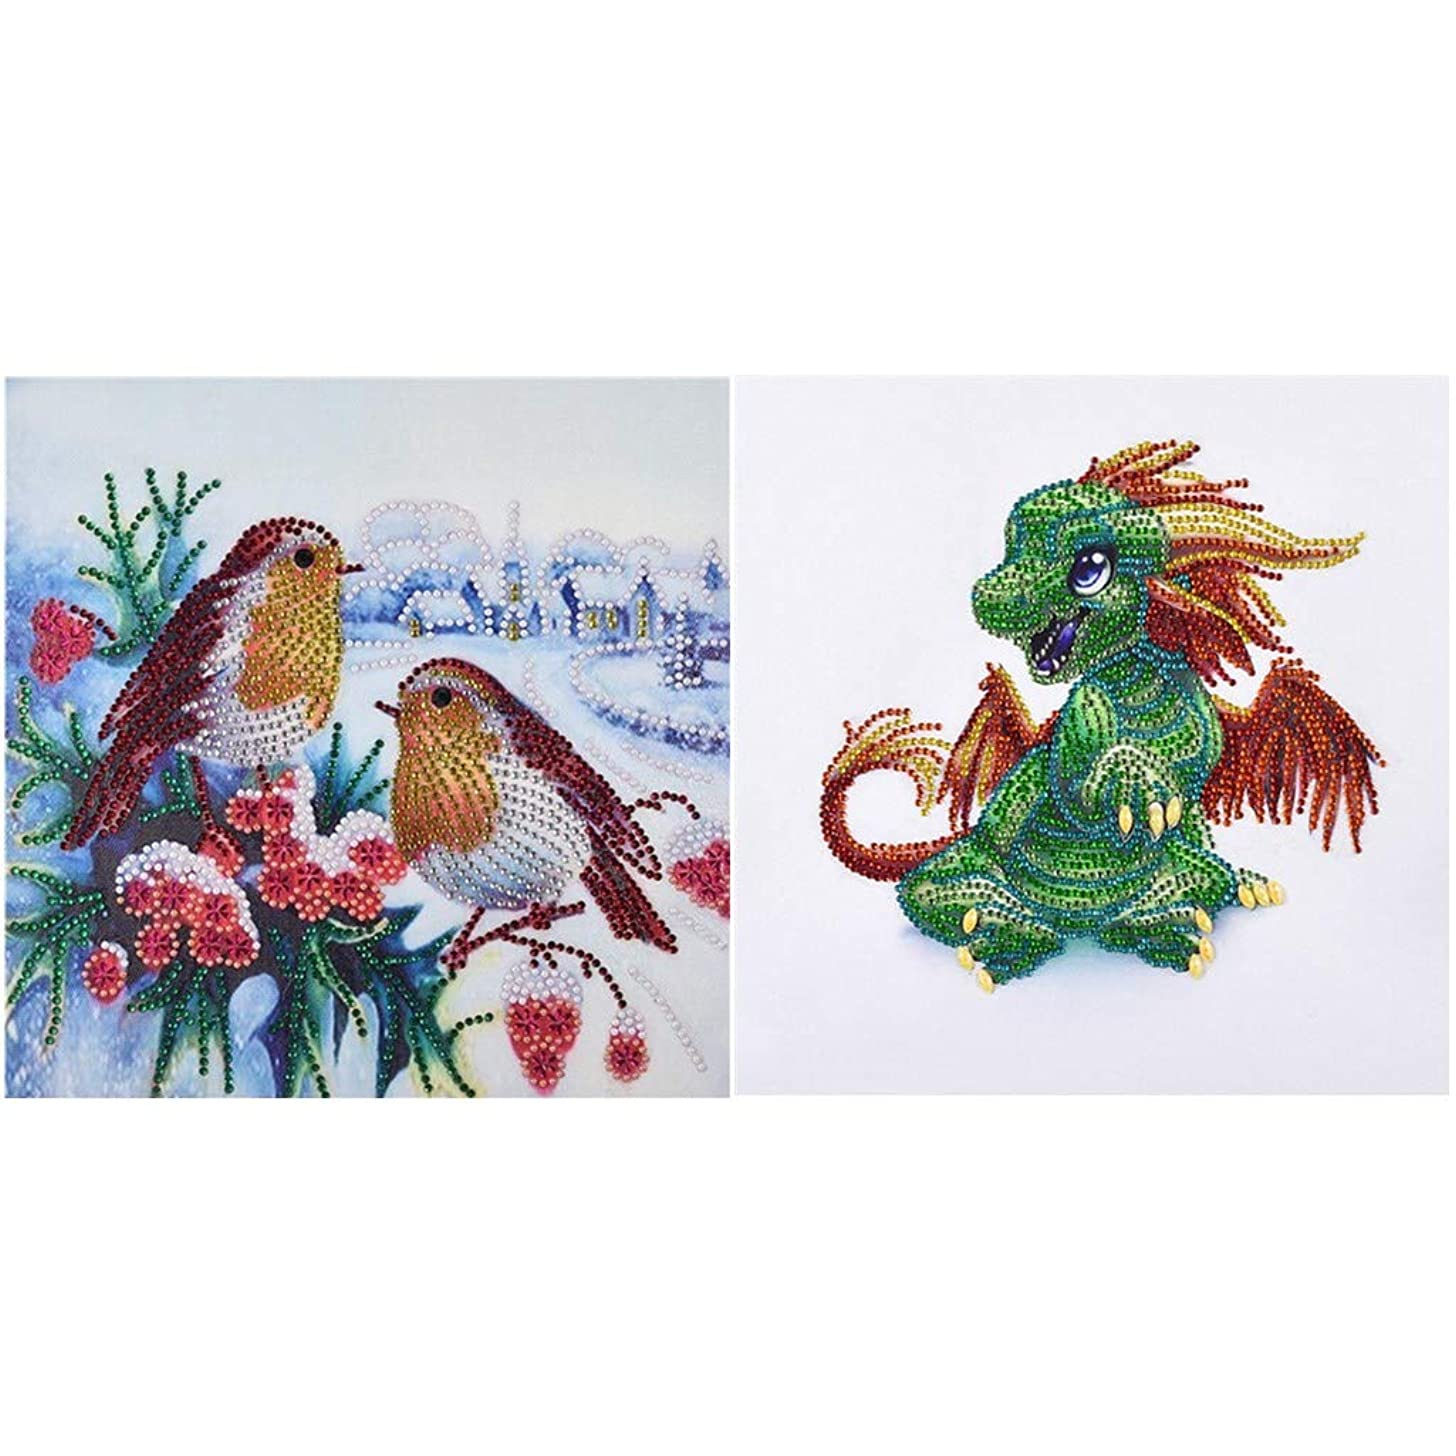 NIHAI 2Pcs/Set DIY 5D Diamond Painting Kit, Dragon and Little Bird Special Shaped Diamond Painting Embroidery Cross Stitch Crystal Rhinestone Arts Craft Canvas Home Wall Decor